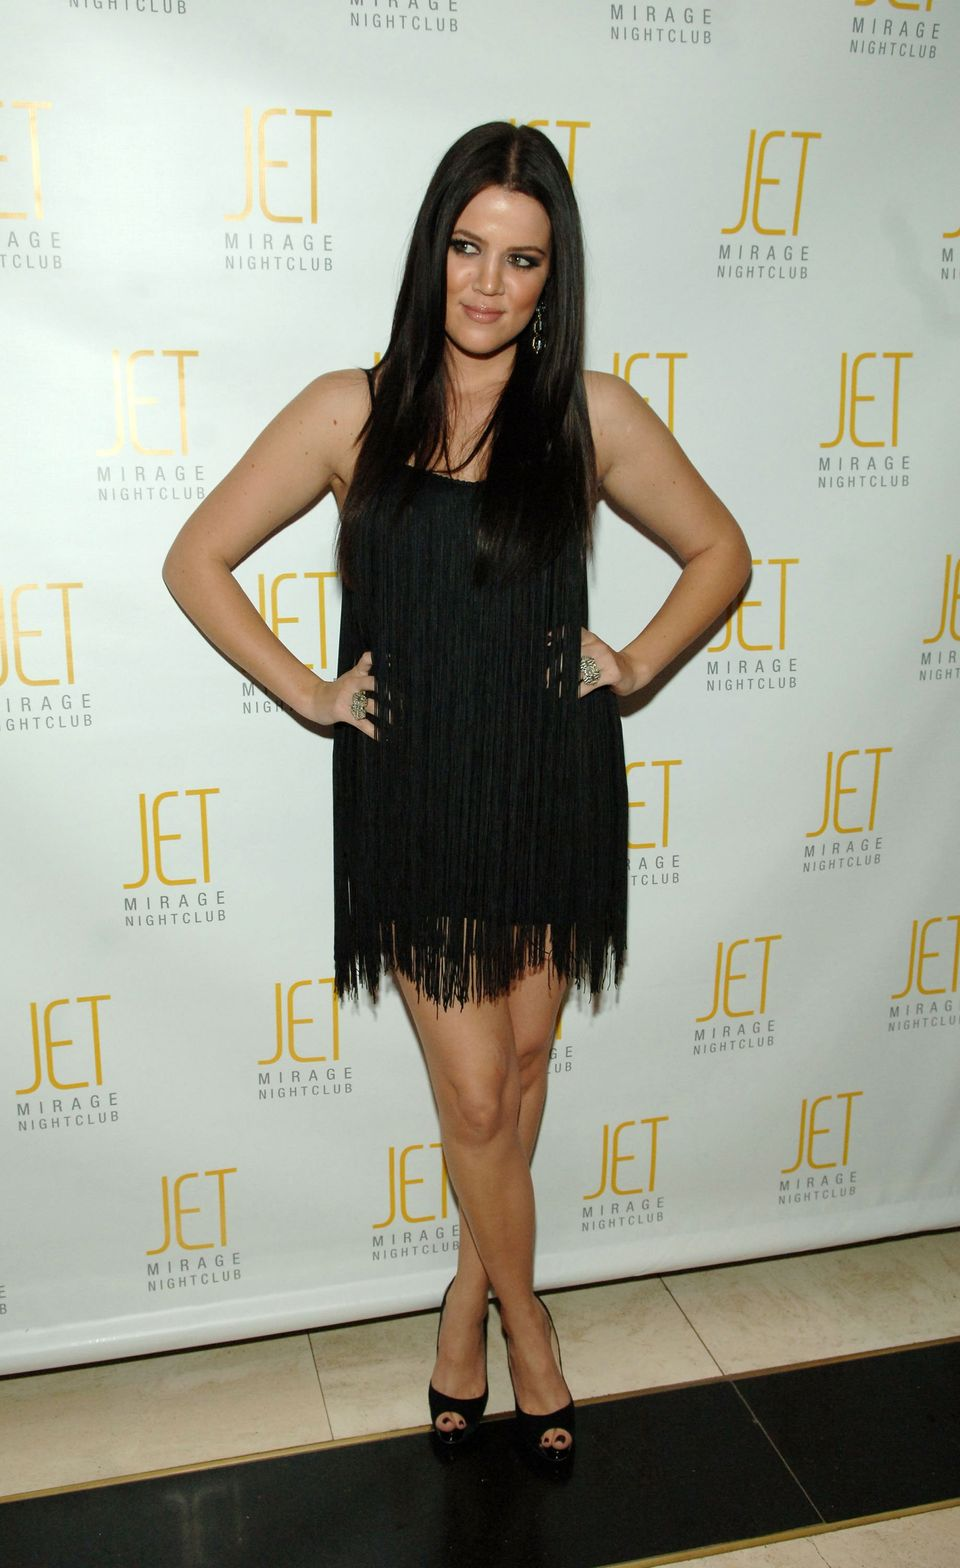 At sister Kim Kardashian's 27th birthday celebration at Jet Nightclub at The Mirage Hotel & Casino Resort in Las Veg